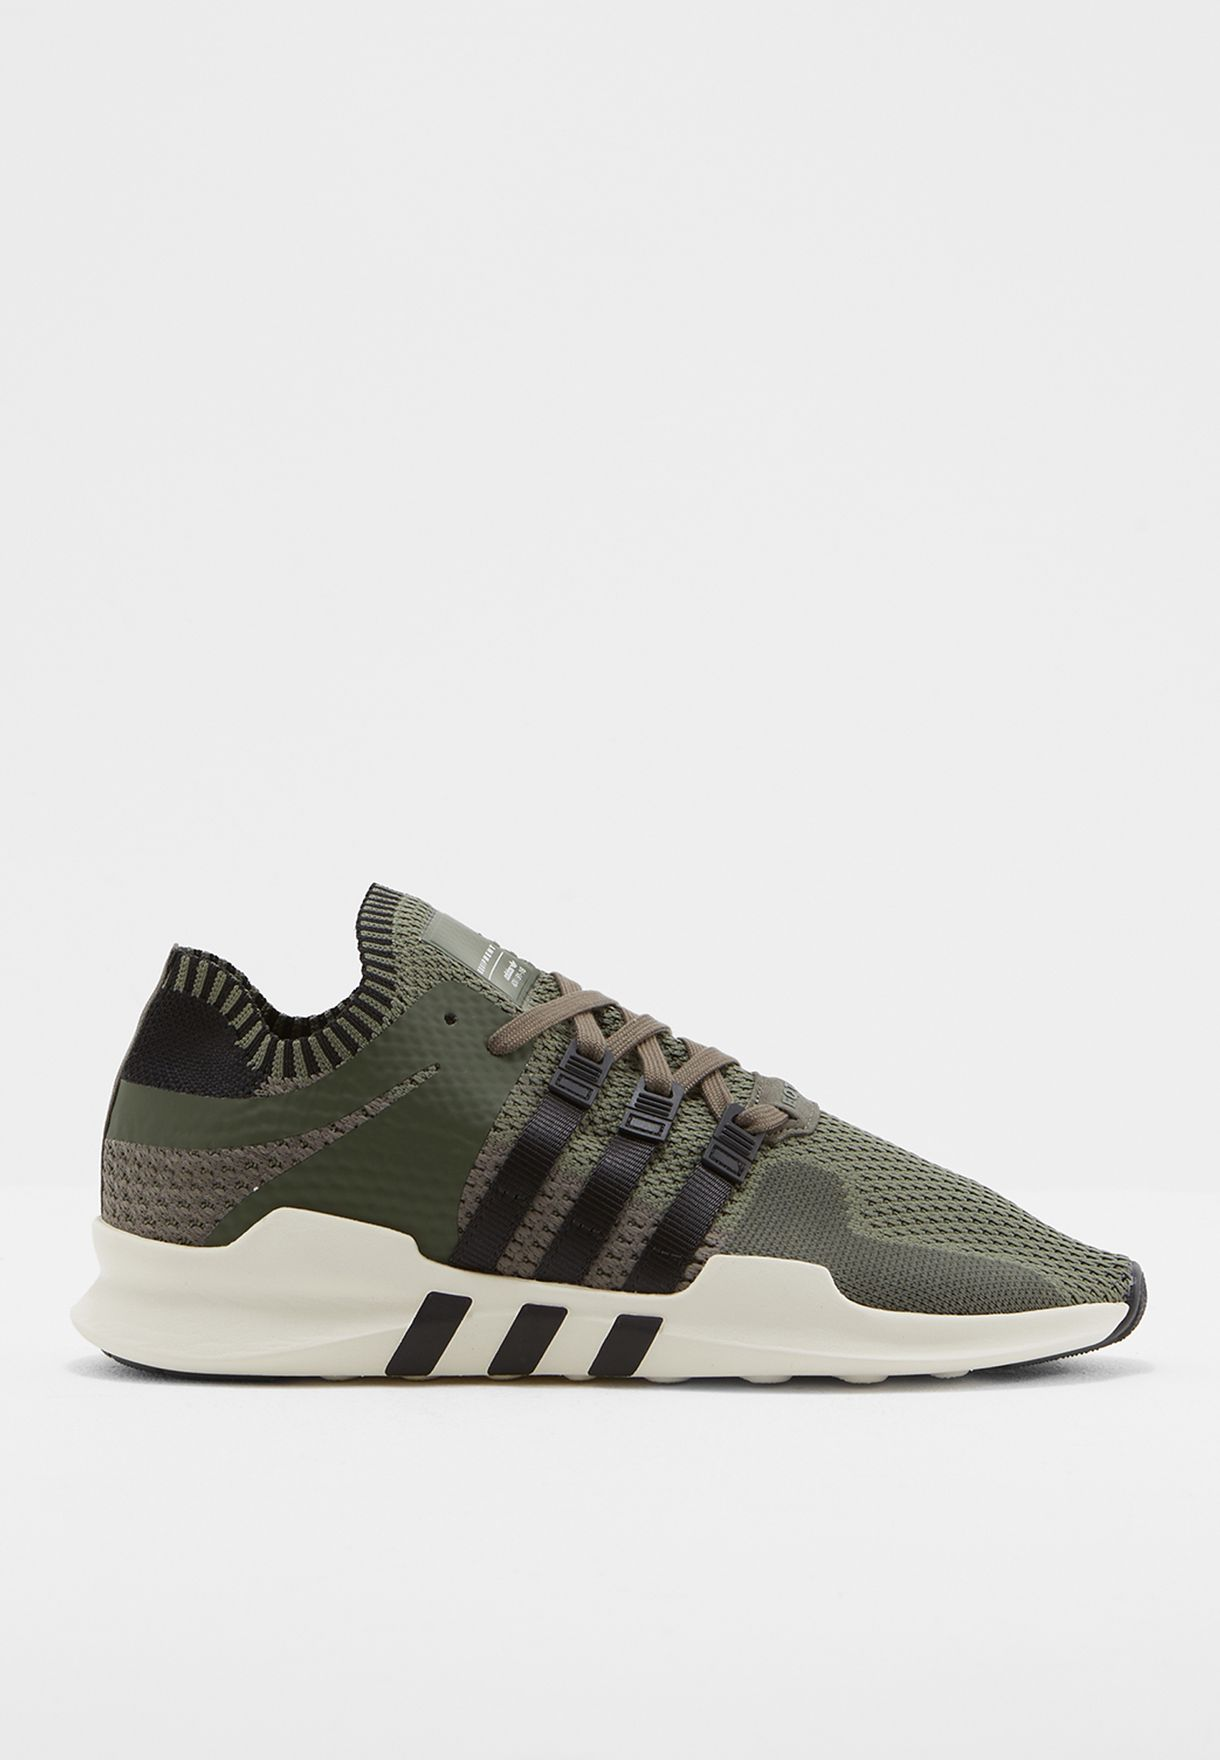 reputable site dfa2f 125e3 EQT Support ADV PK